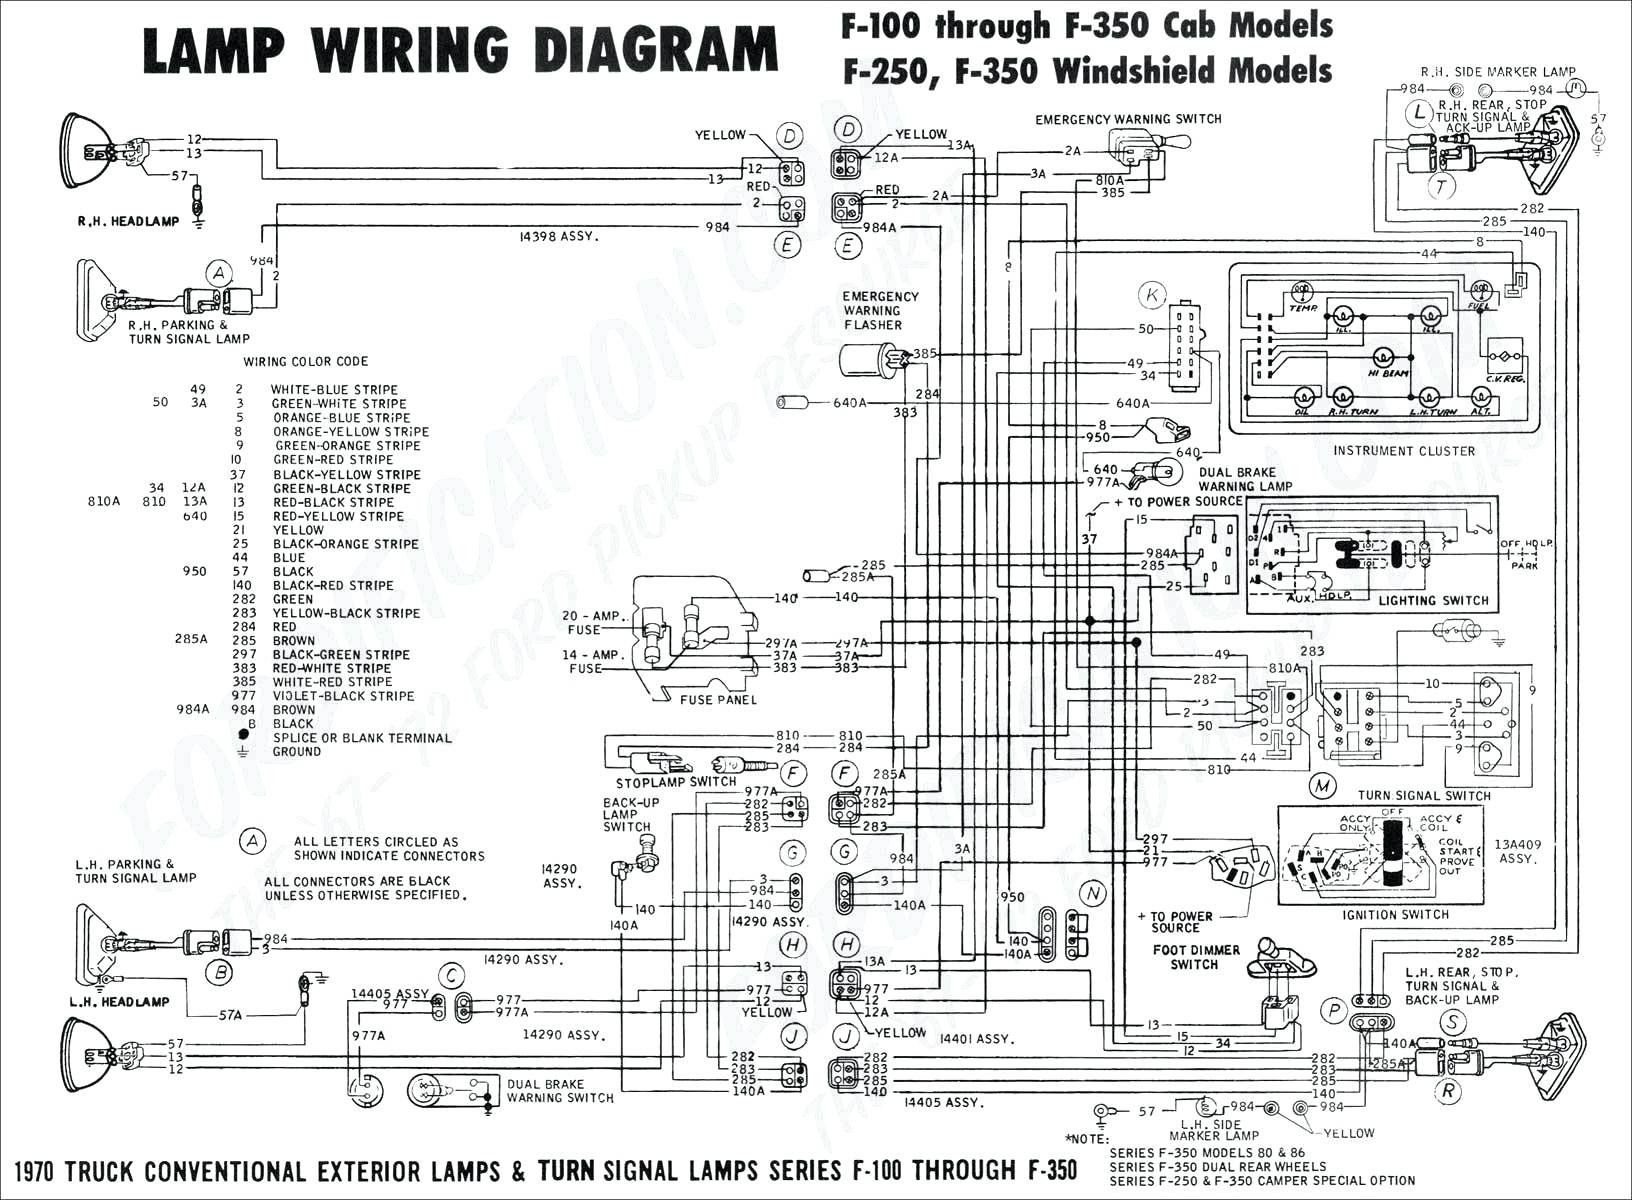 wiring diagram for 2006 f250 wiring diagram img 2006 Hyundai Santa Fe Wiring Diagram